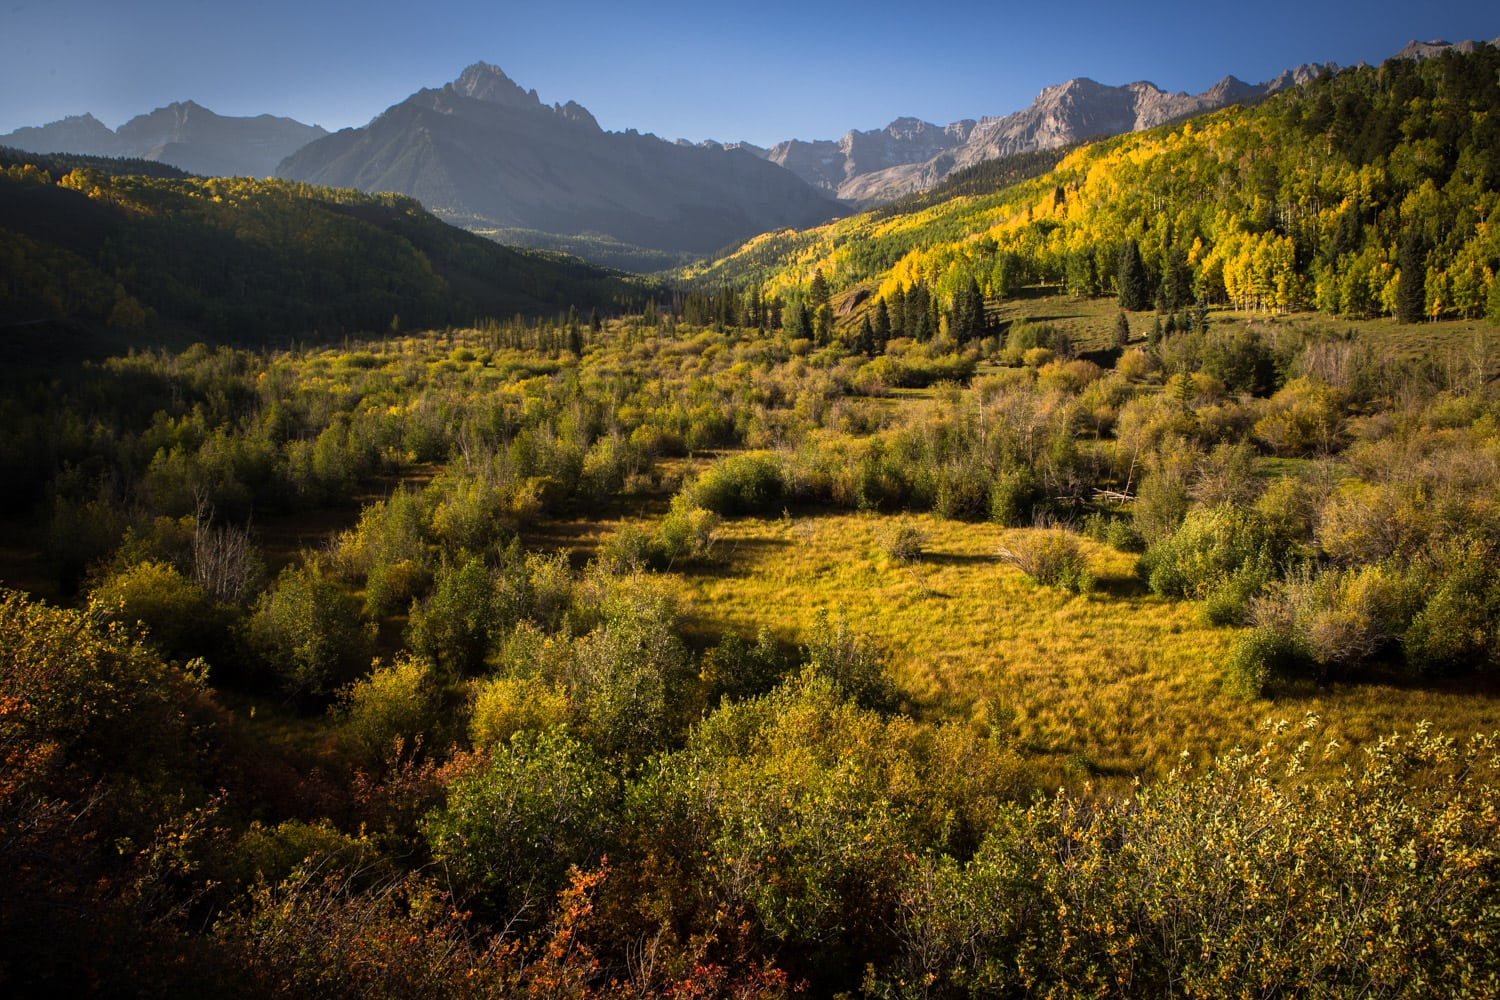 Sneffels Range - Experience the best fall colors in Colorado with this detailed road trip itinerary